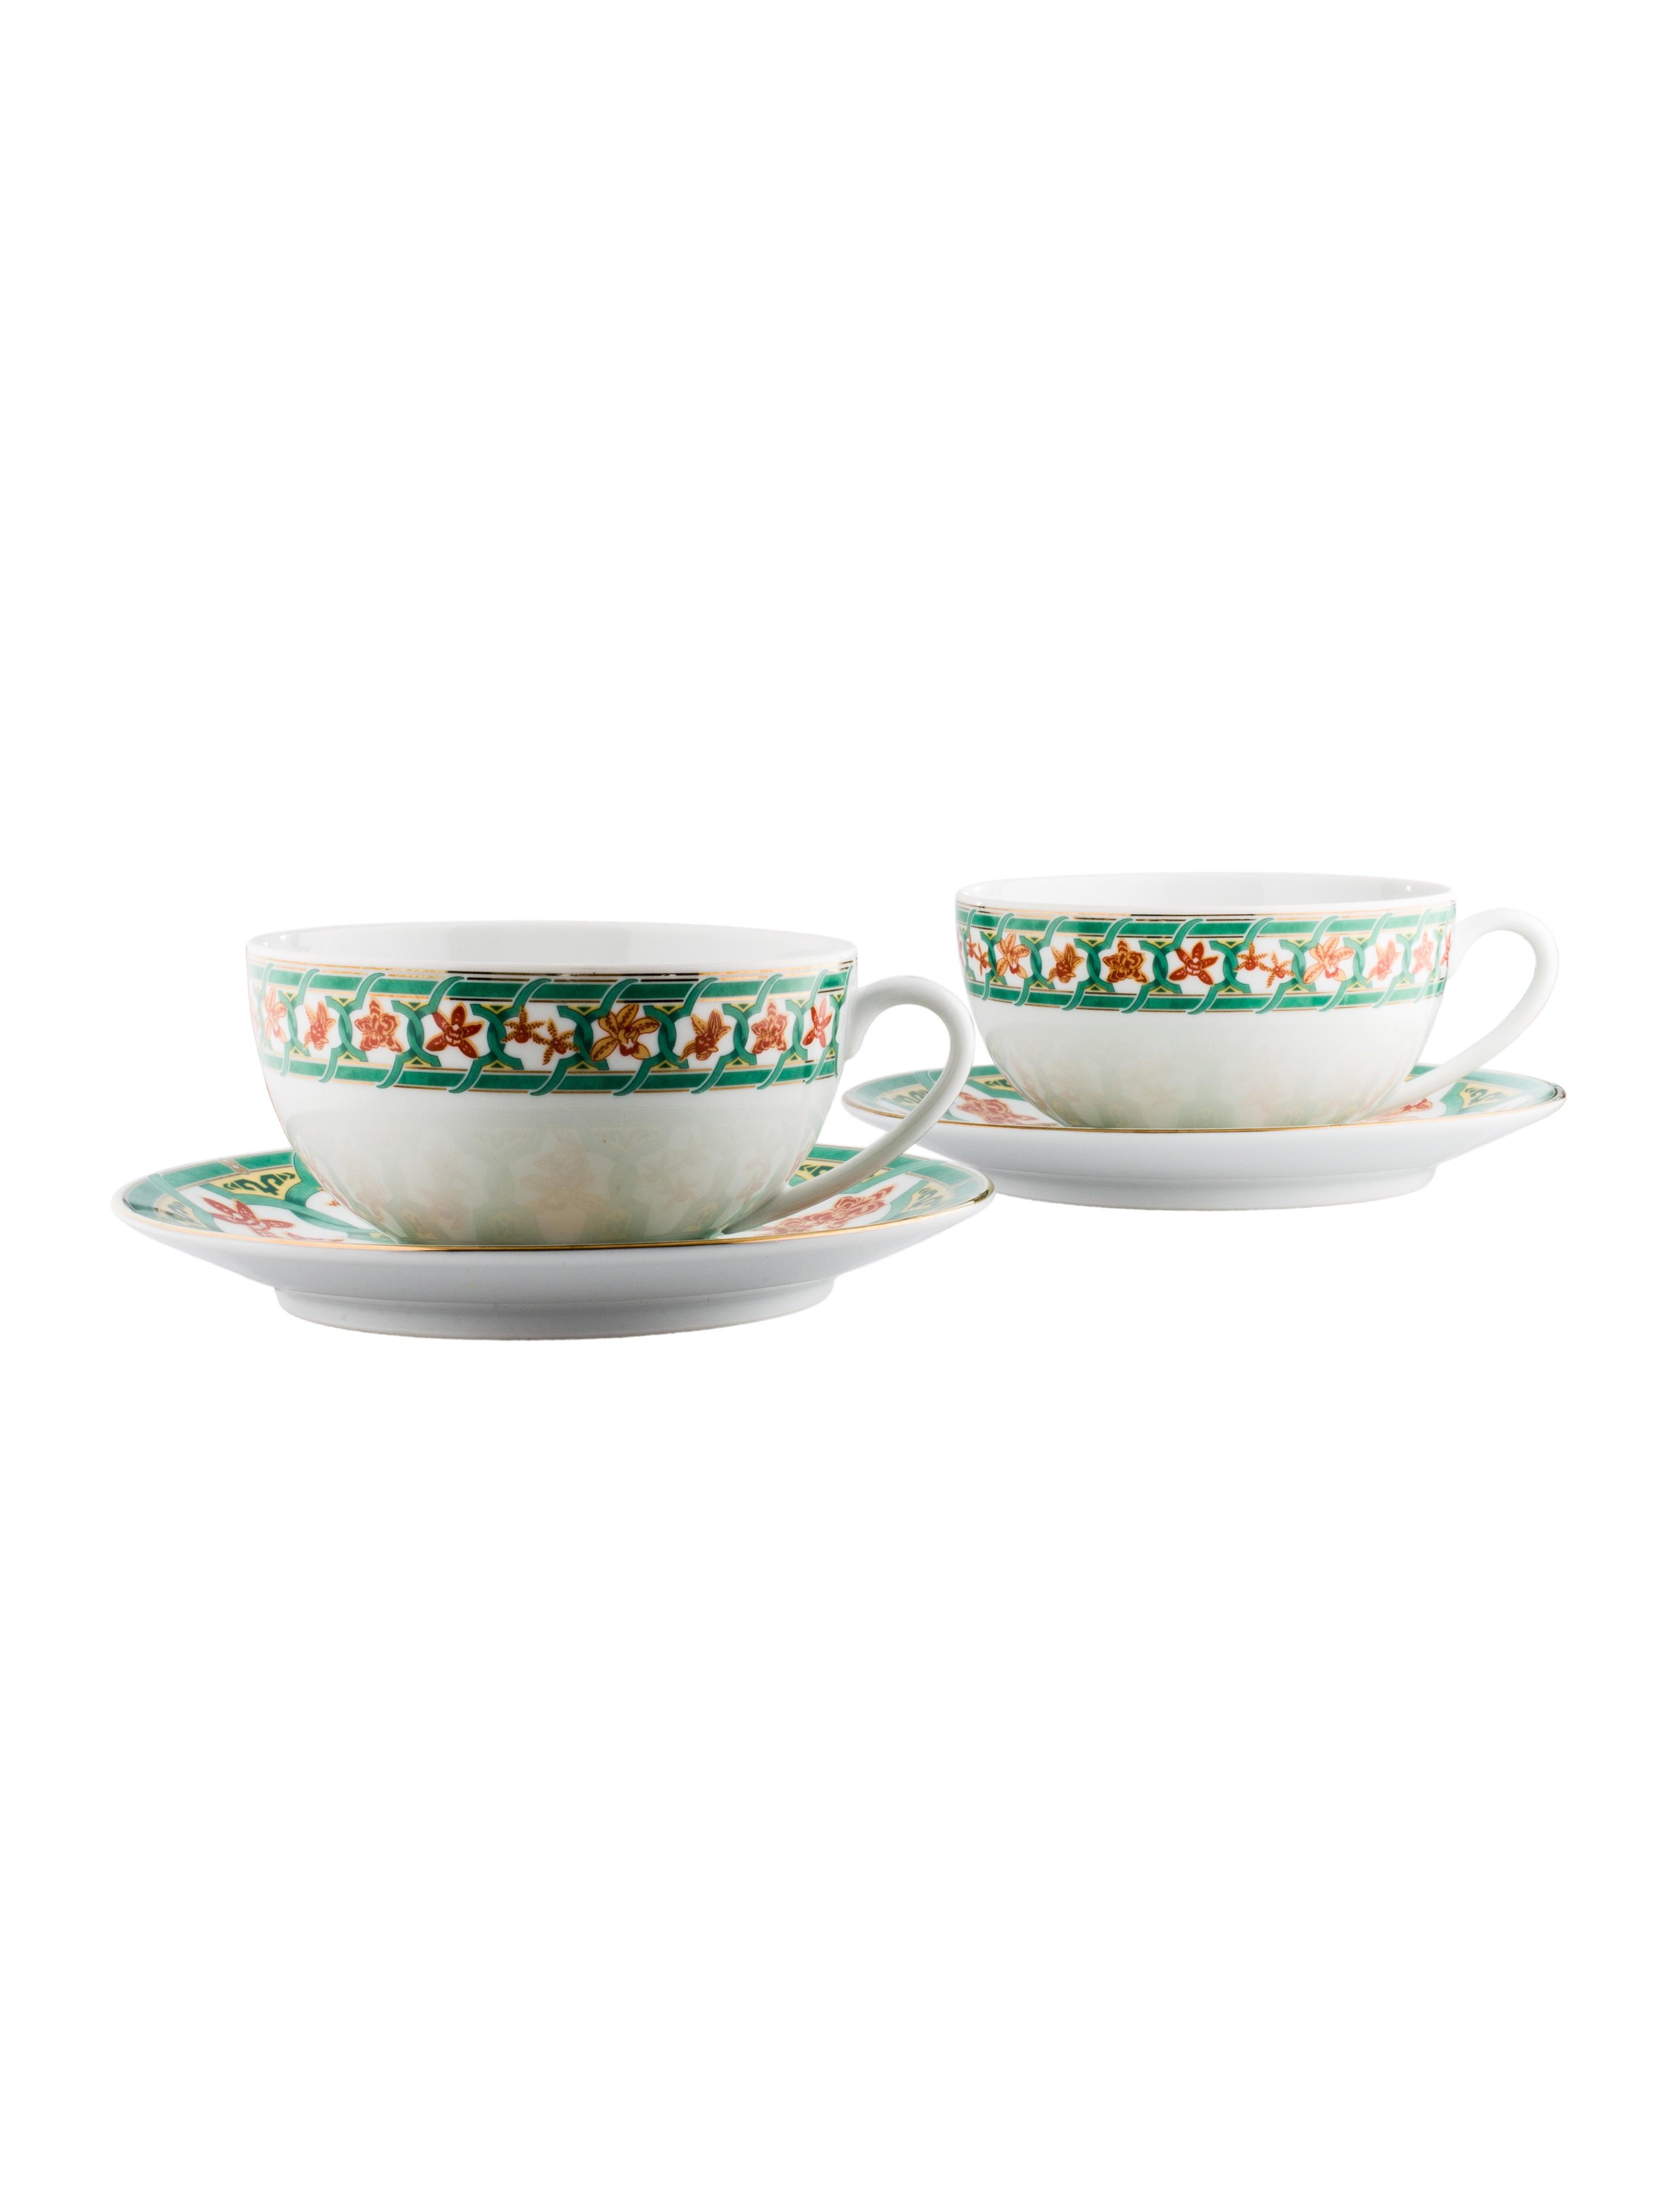 8ebafc6fc6 Christofle Ginkgo Cups and Saucers - Tabletop & Kitchen - CFL20018 ...